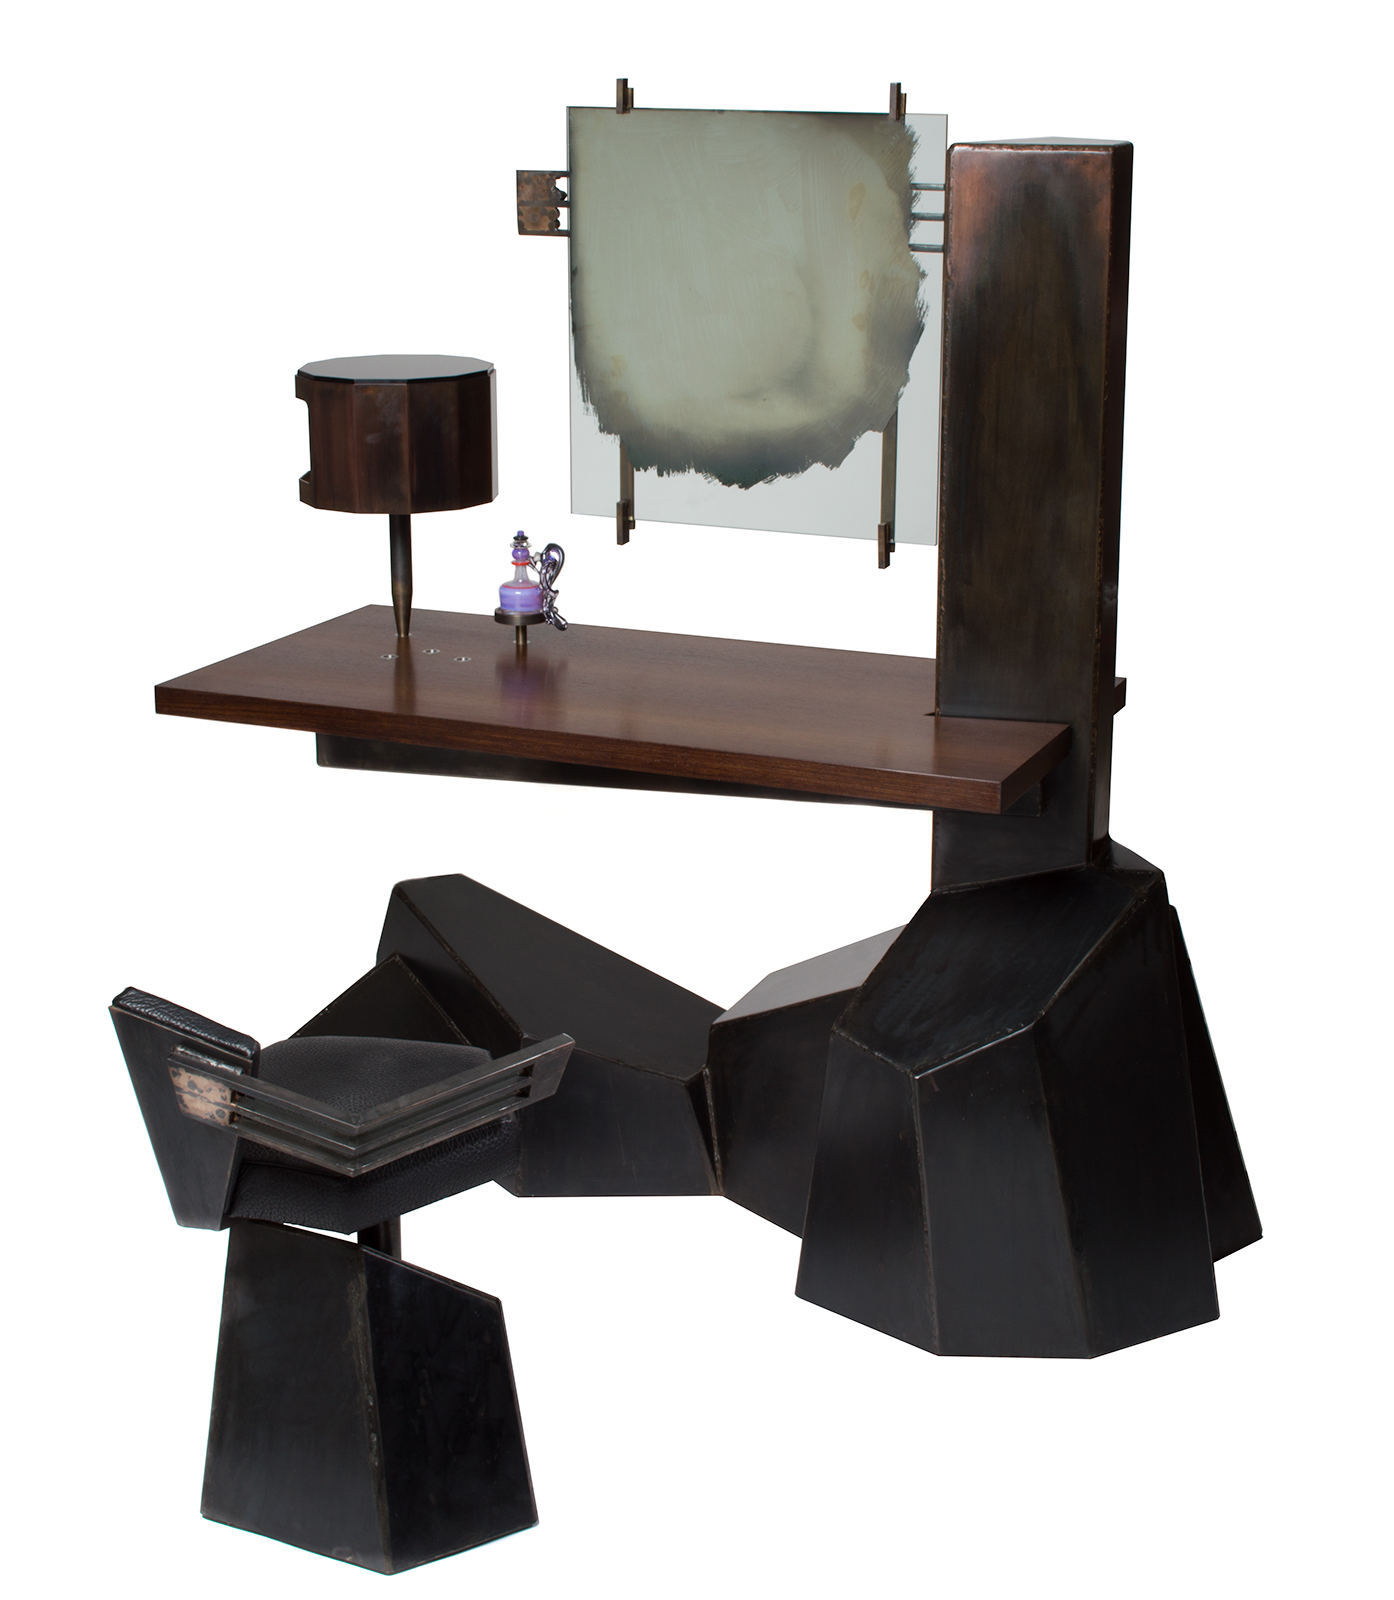 Datum Vanity & Chair by Chuck Moffit